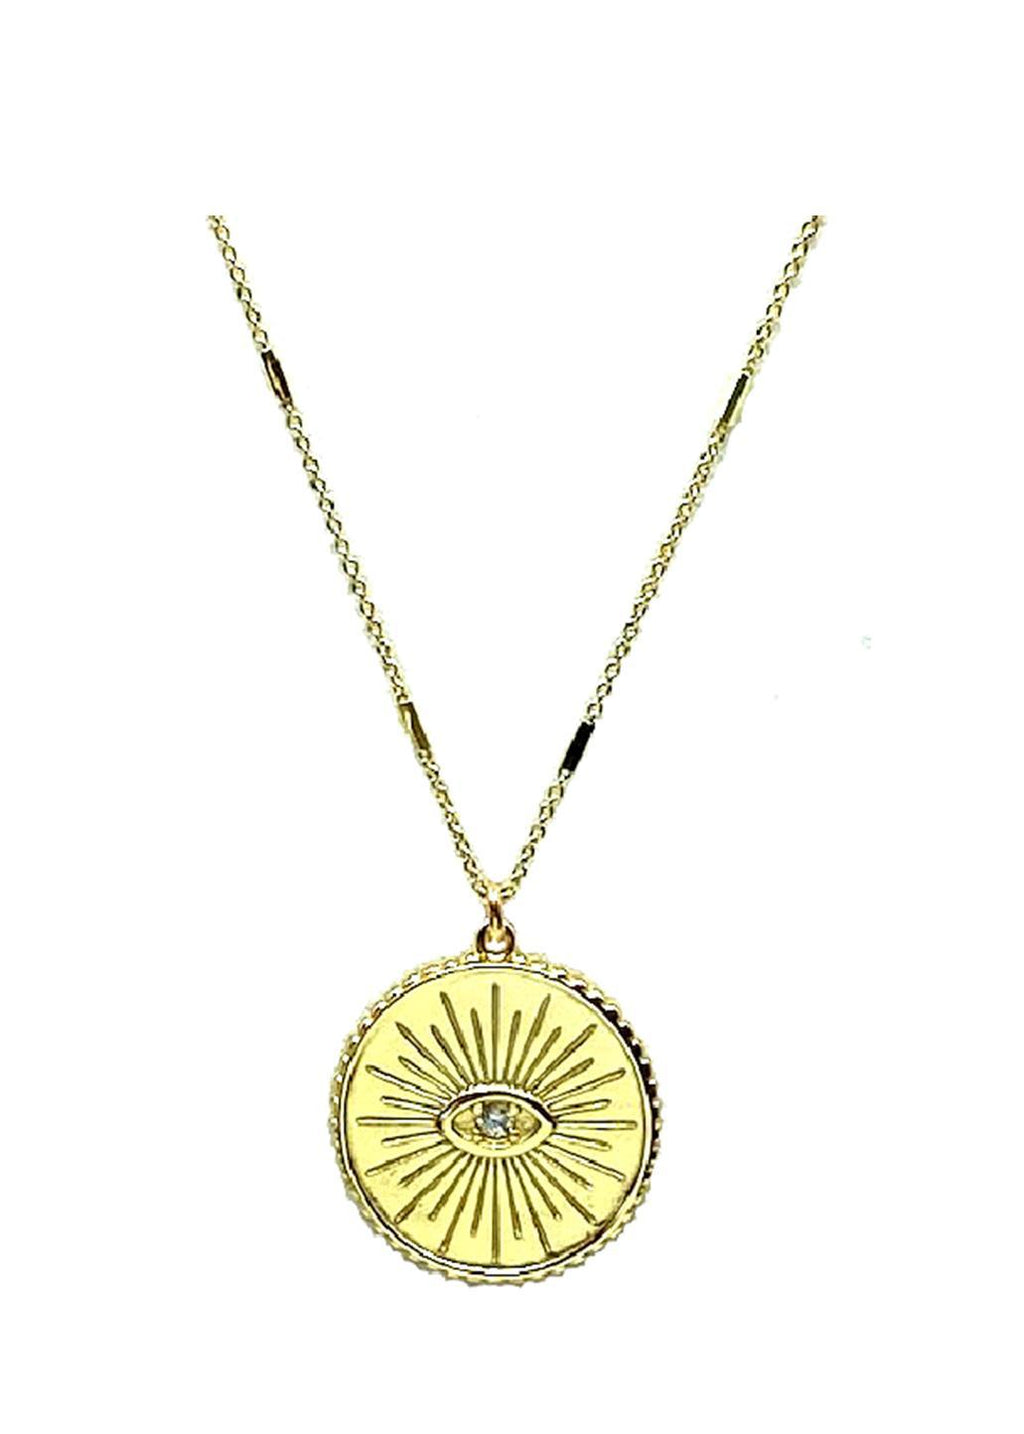 Evil Eye Necklace on Fancy Chain: Gold Vermeil Necklaces athenadesigns